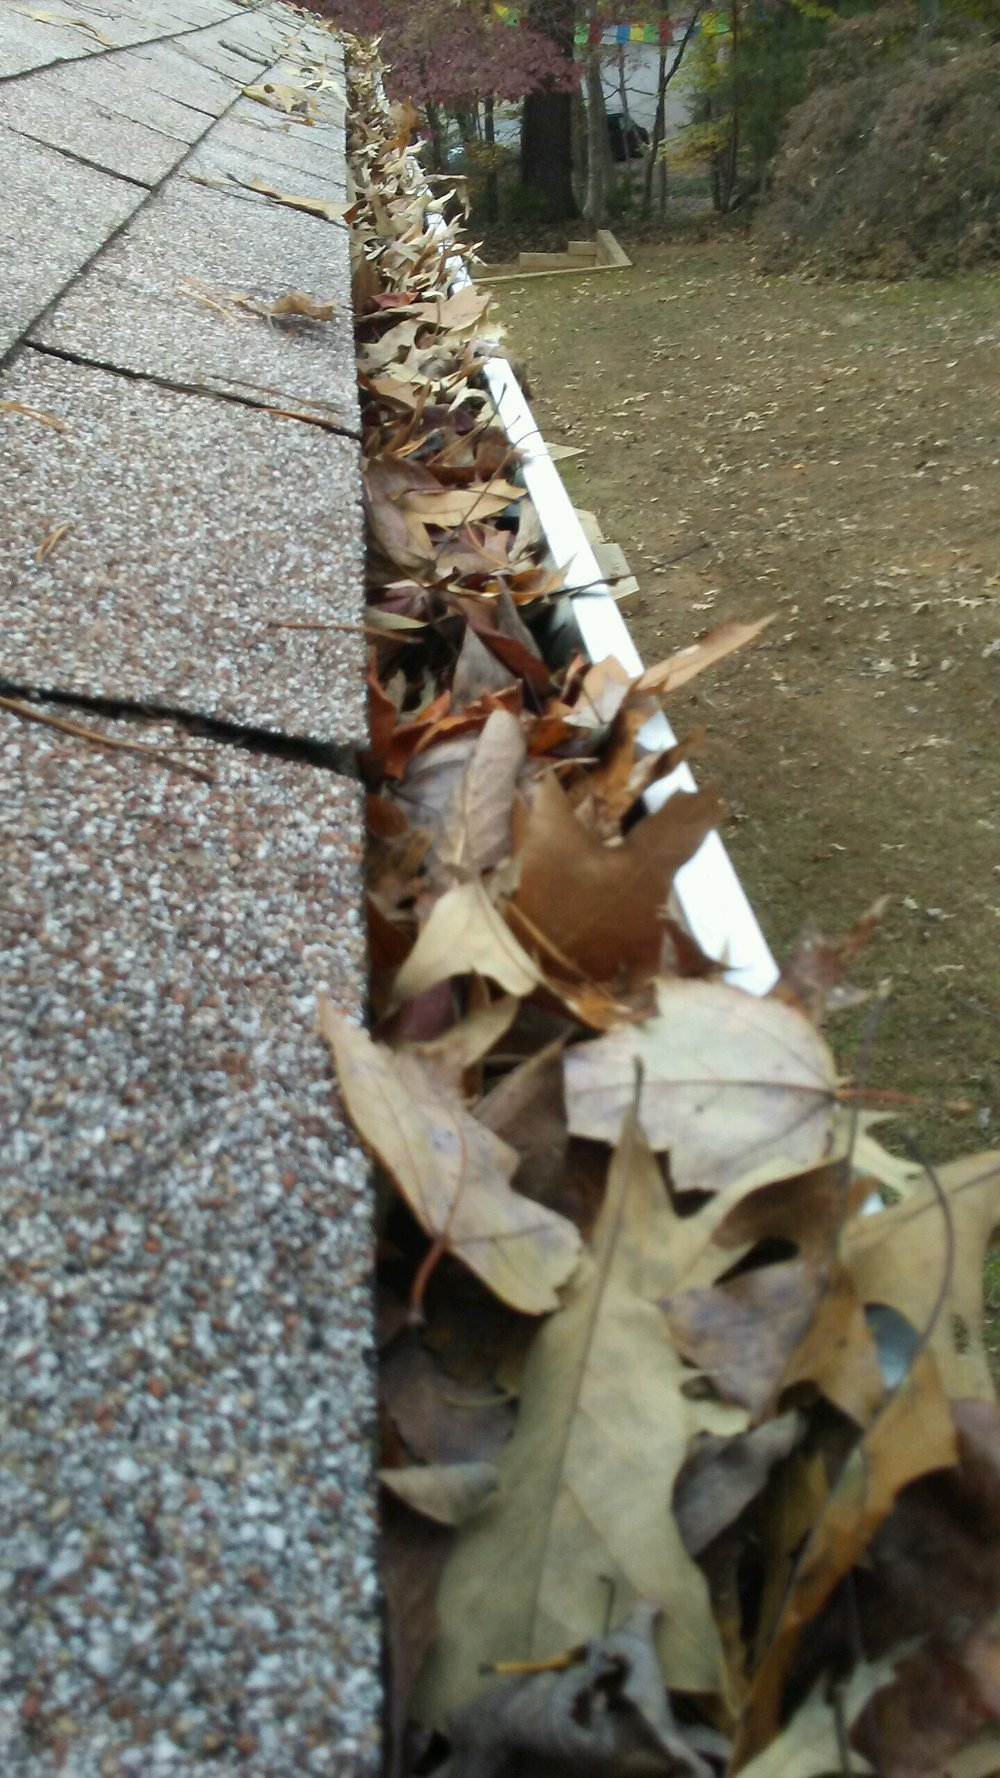 Image of a gutter full of leaves and debris in Charlottesville VA